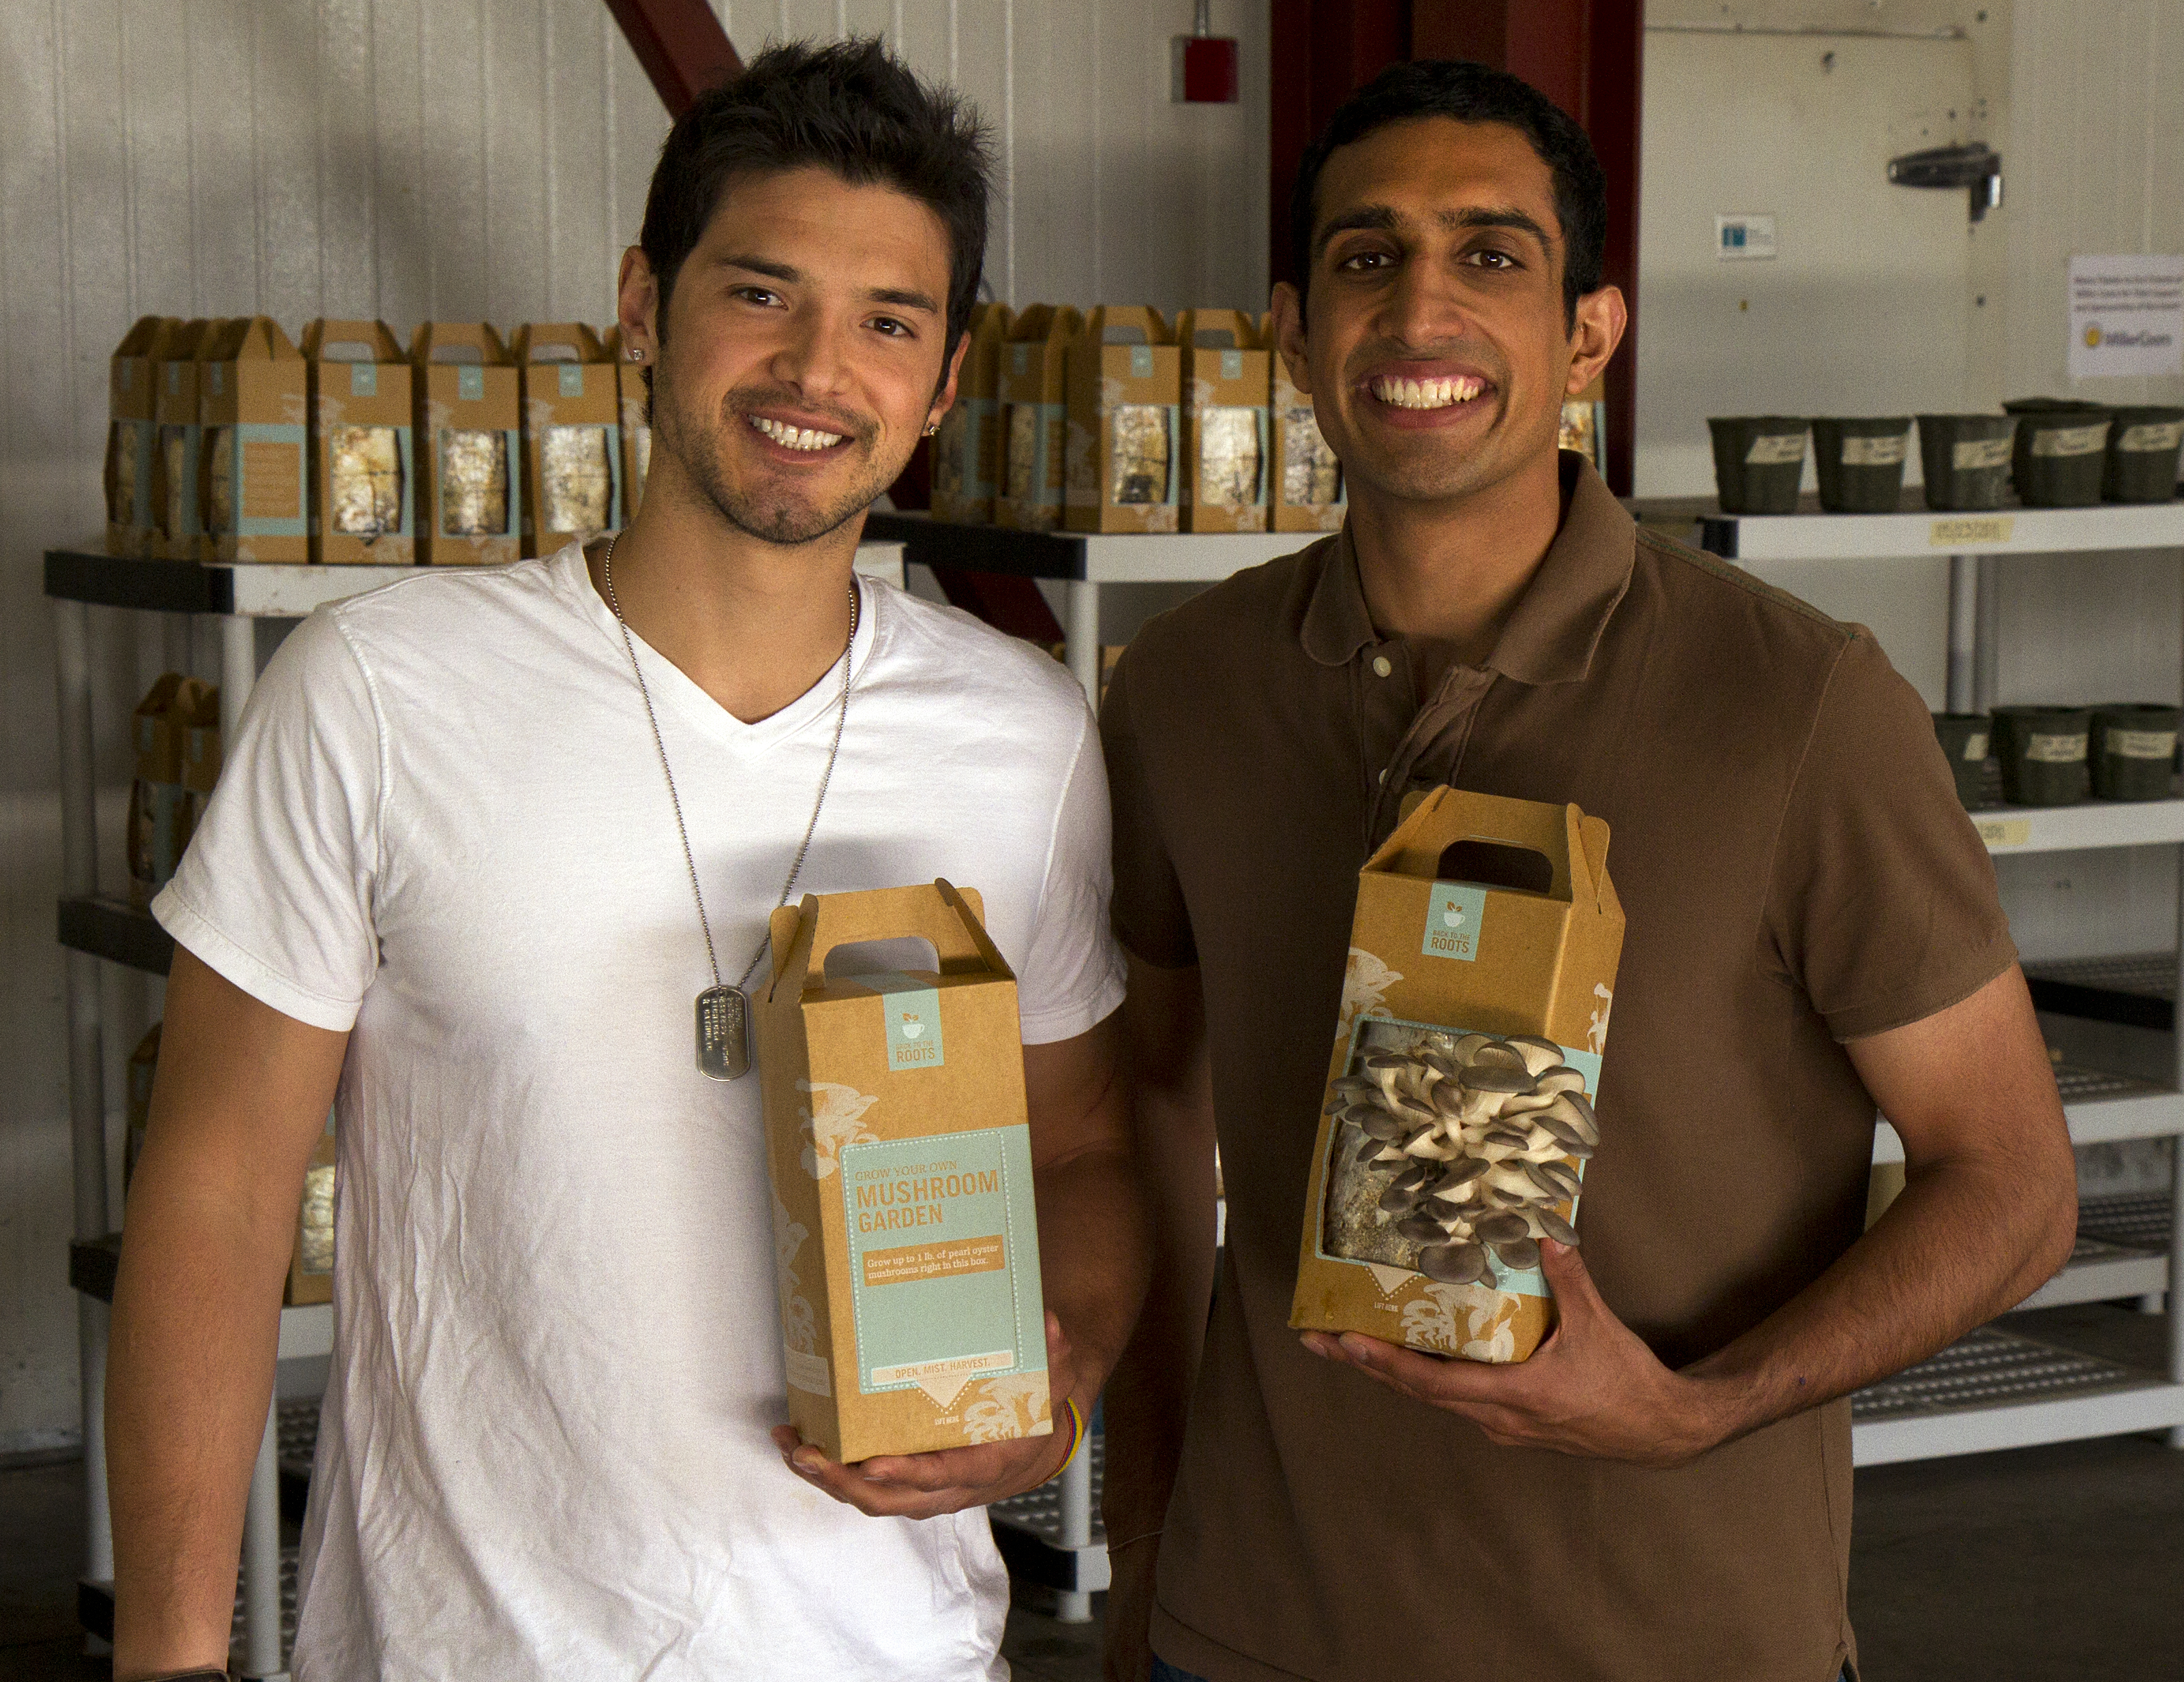 Nikhil Arora and Alejandro Velez, Founders of Back to the Roots